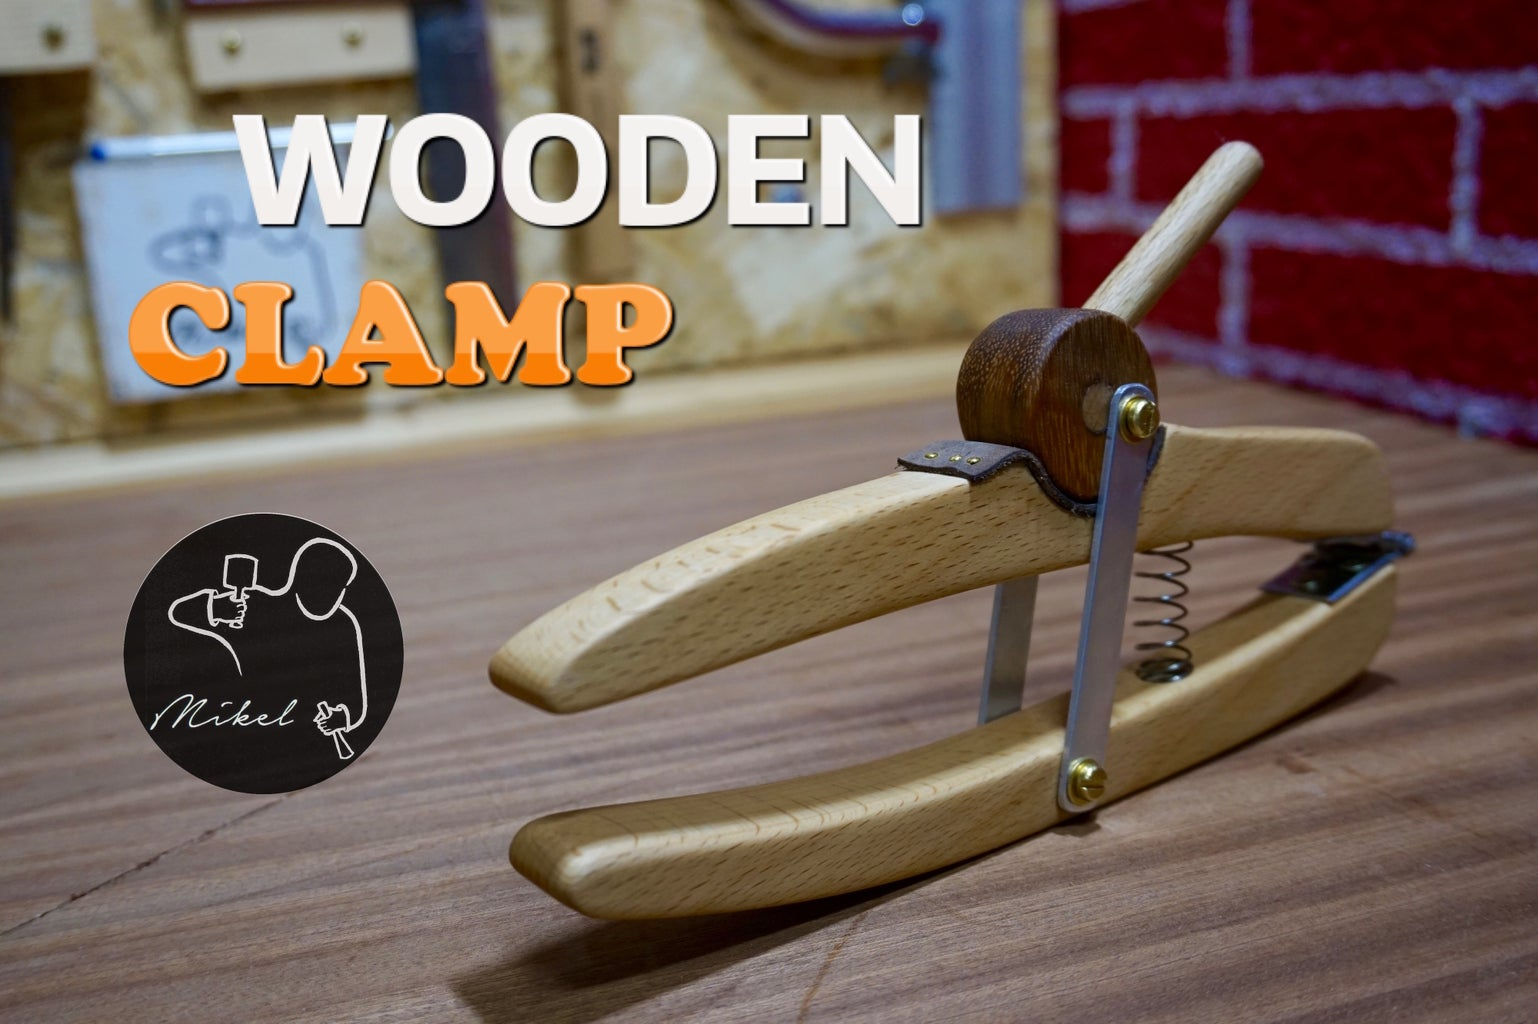 Homemade Wooden Clamp